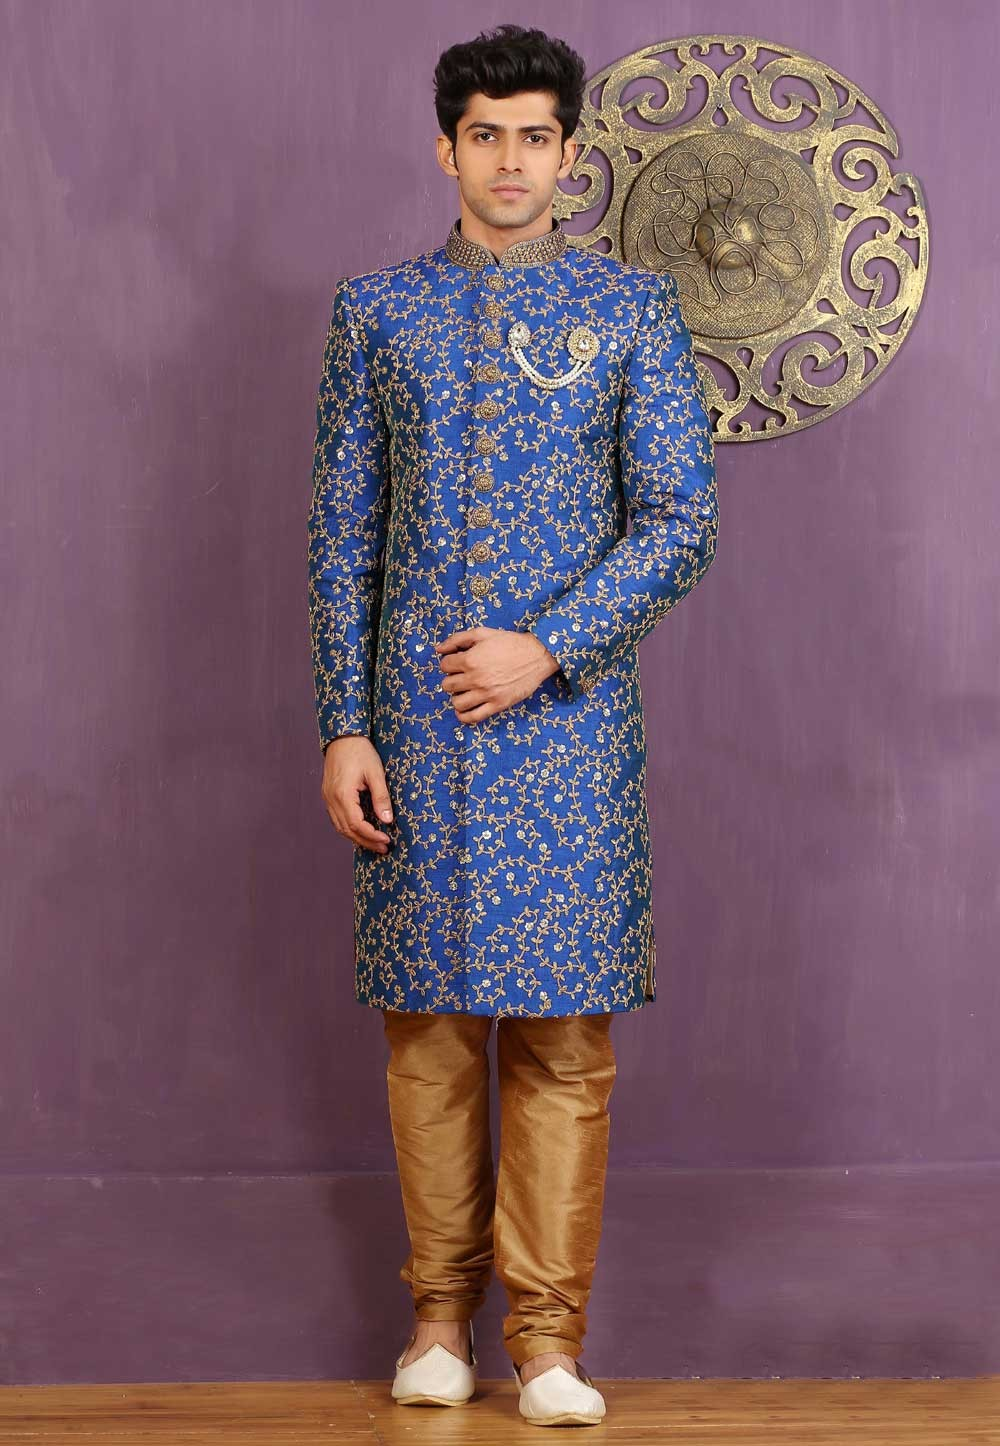 Striking Royal Blue Color Sherwani in Jacquard,Brocade Silk Fabric